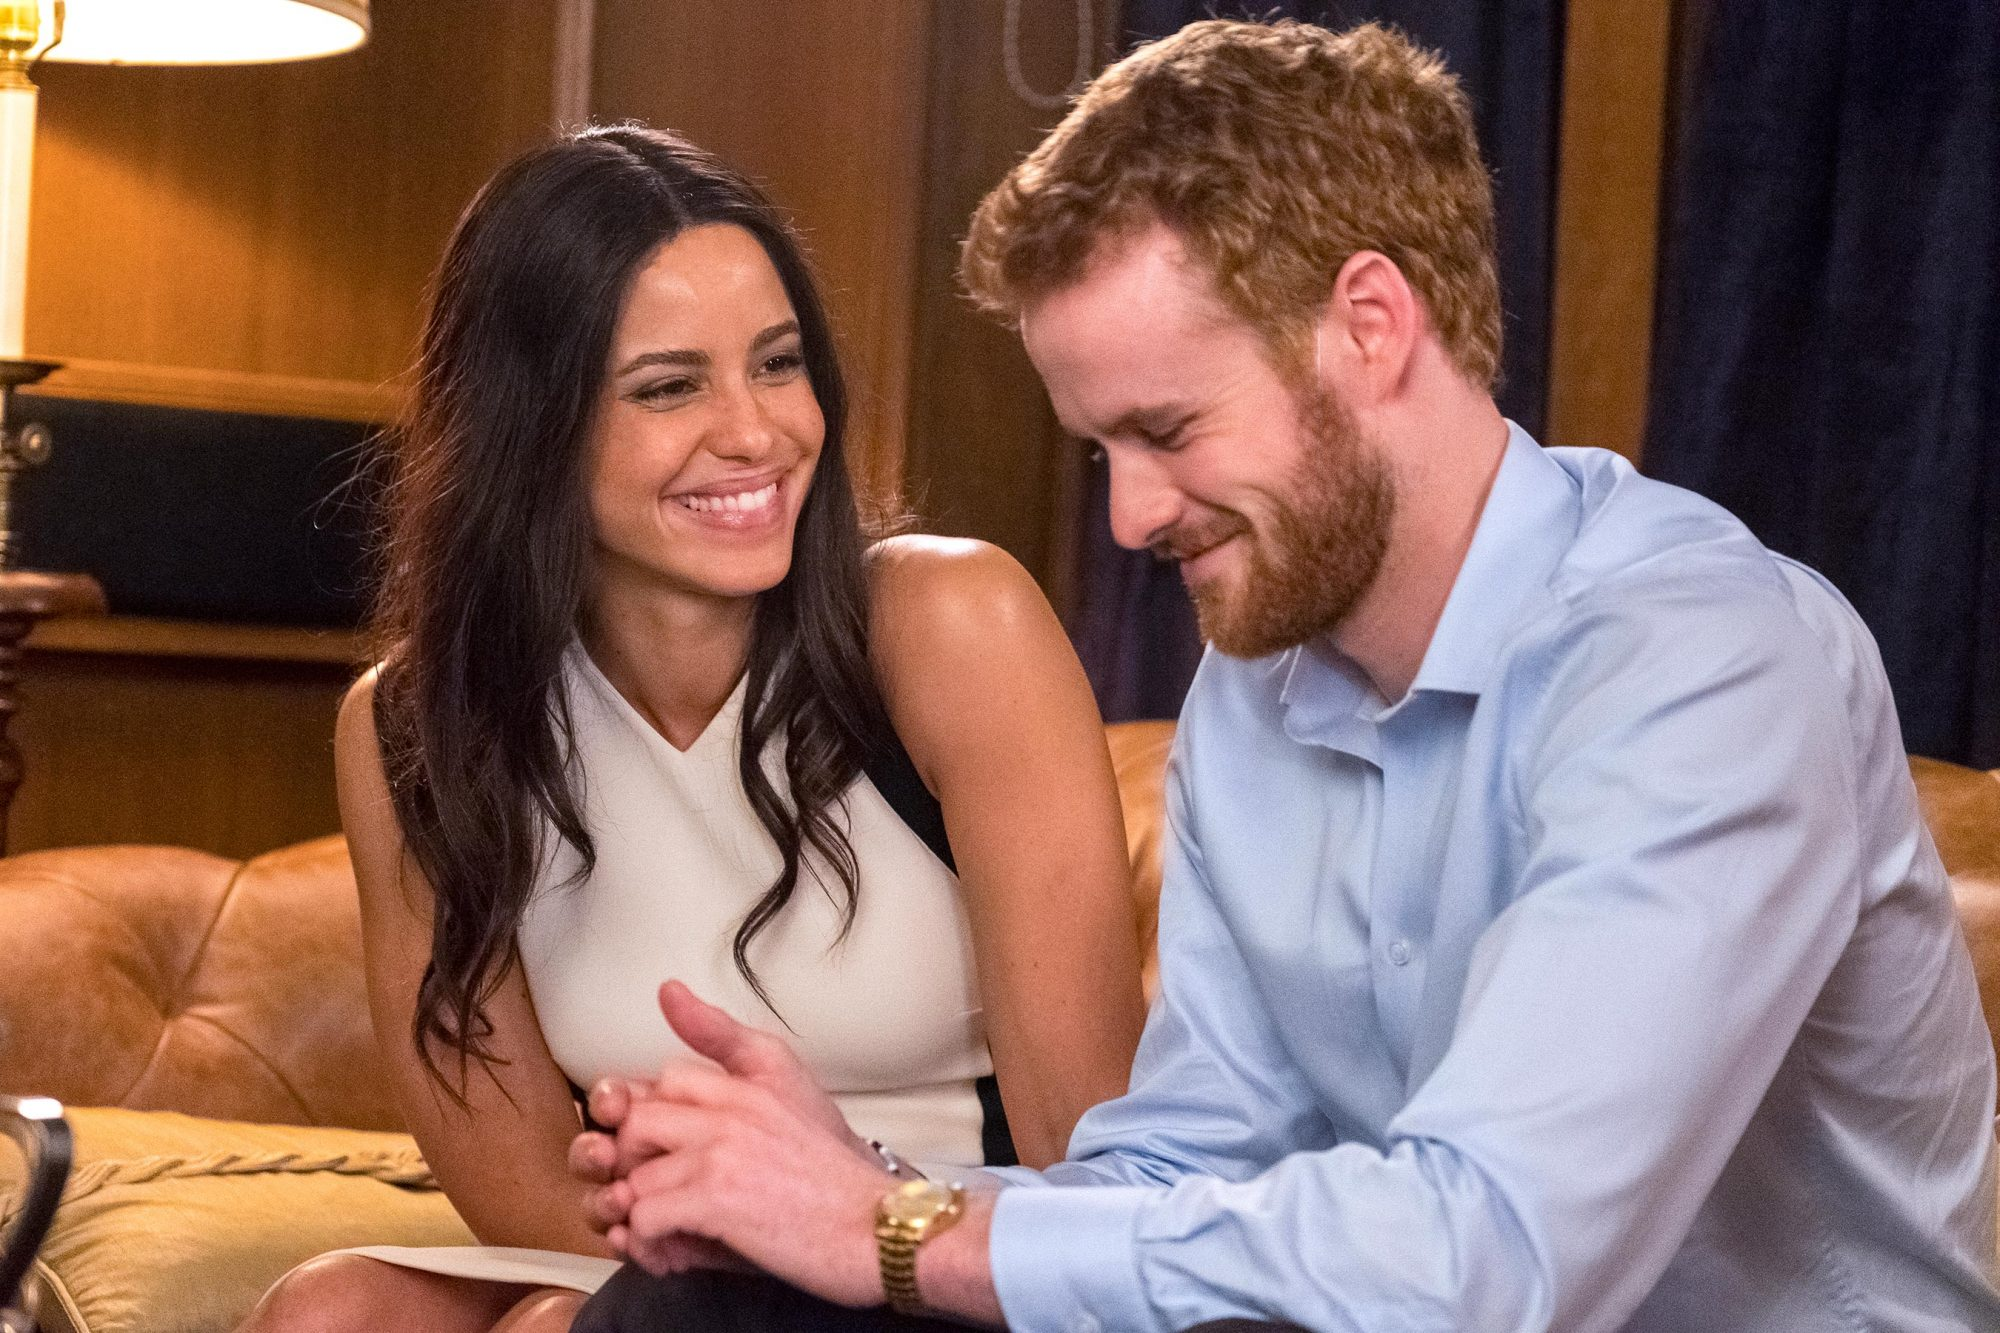 Prince Harry & Meghan Markle: The Funniest Reactions to Lifetime's Movie About the Royal Couple hmarr_02282018_mc_0356-1